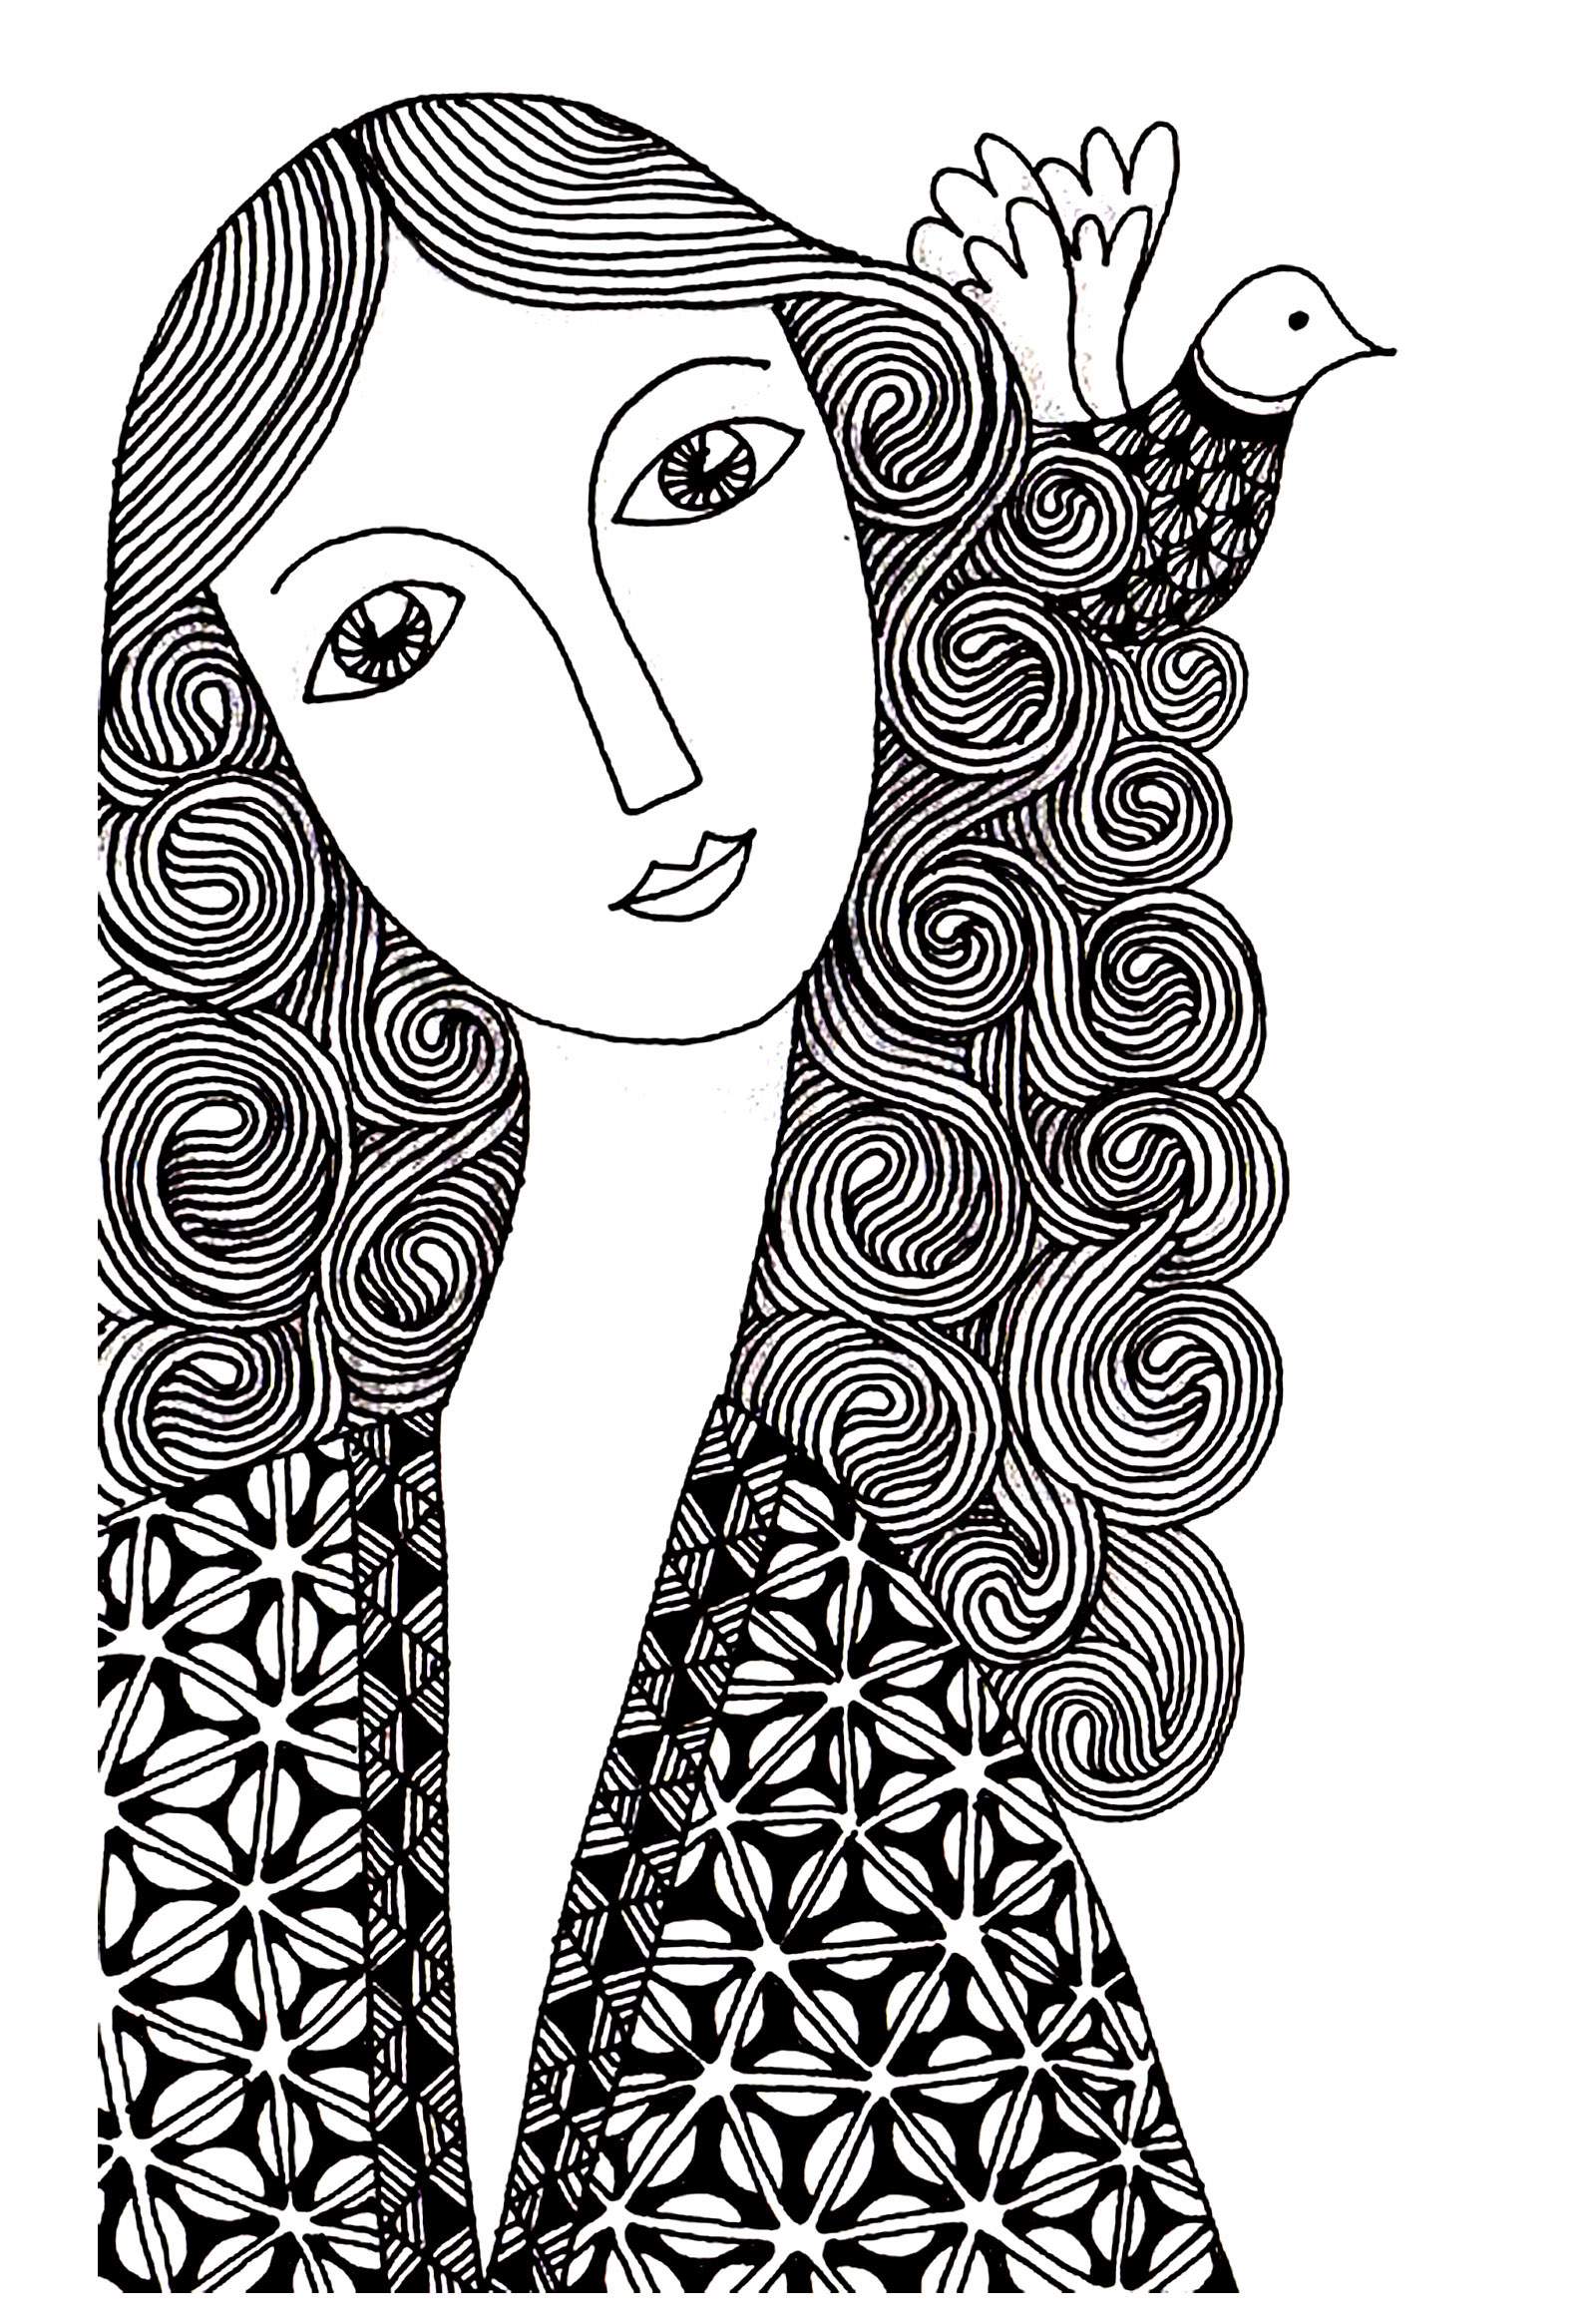 Woman Simple Unclassifiable Adult Coloring Pages